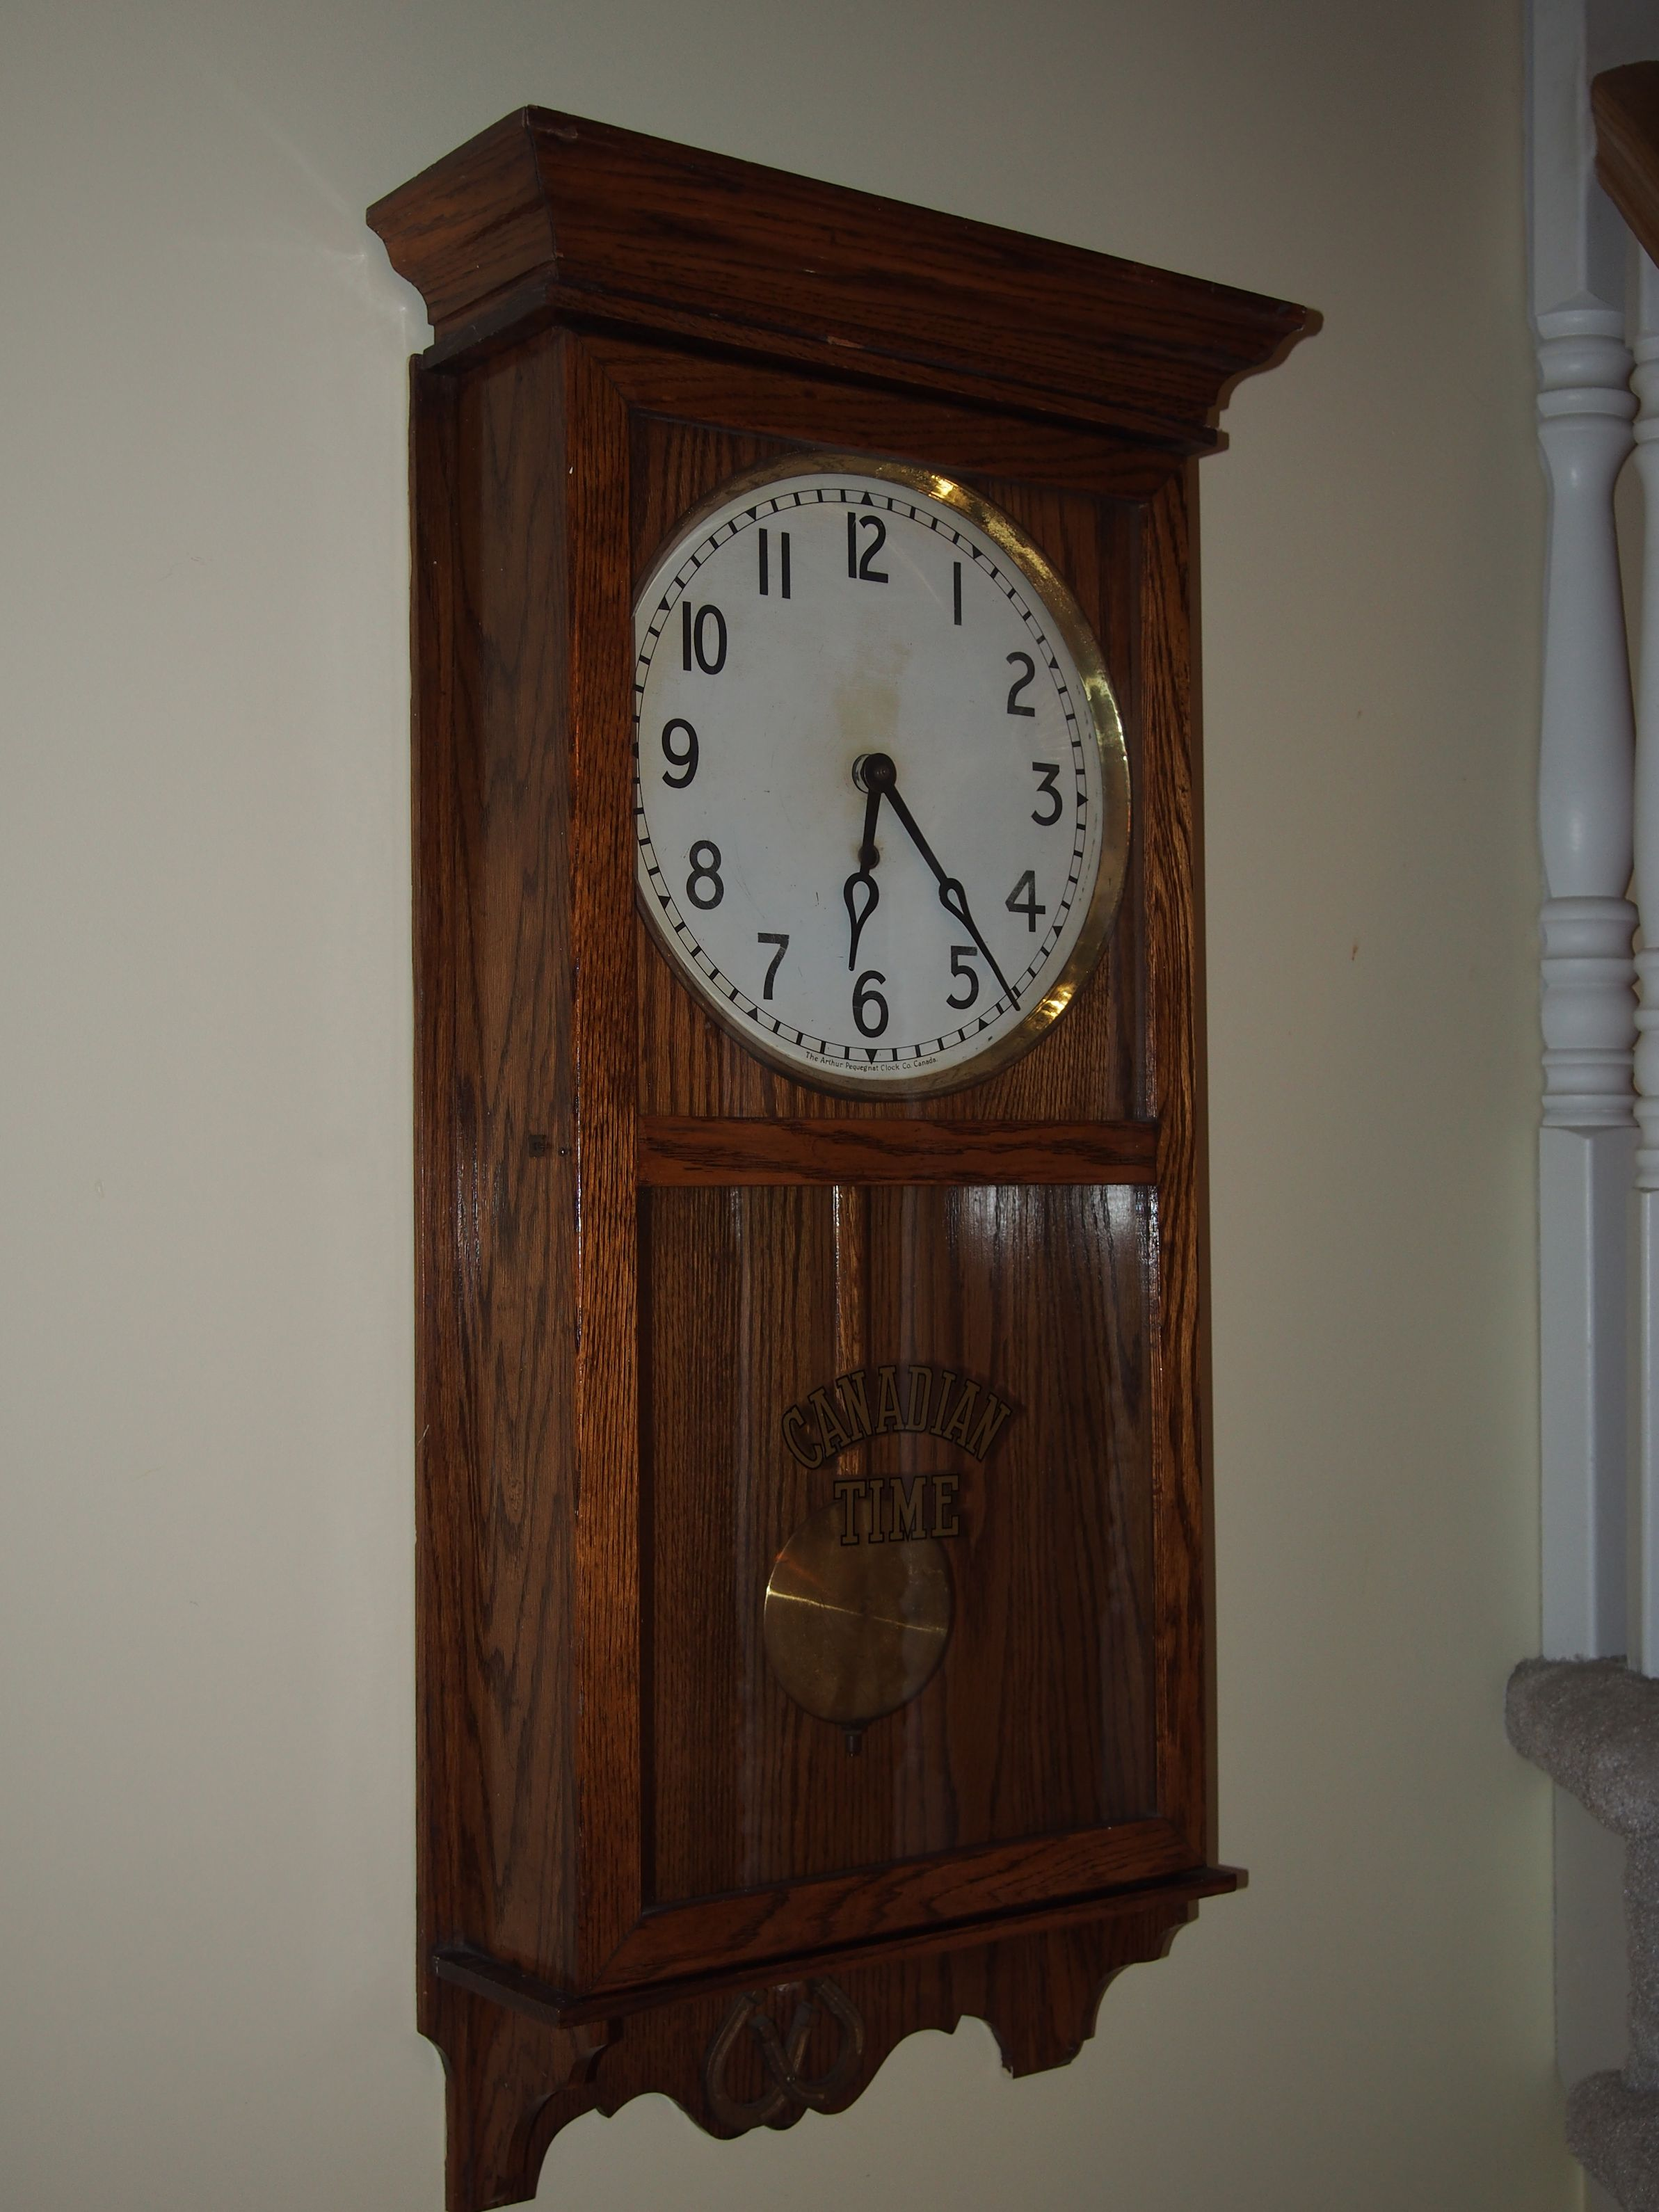 Arthur Pequegnat Canadian Time wall clock – Antique and ...